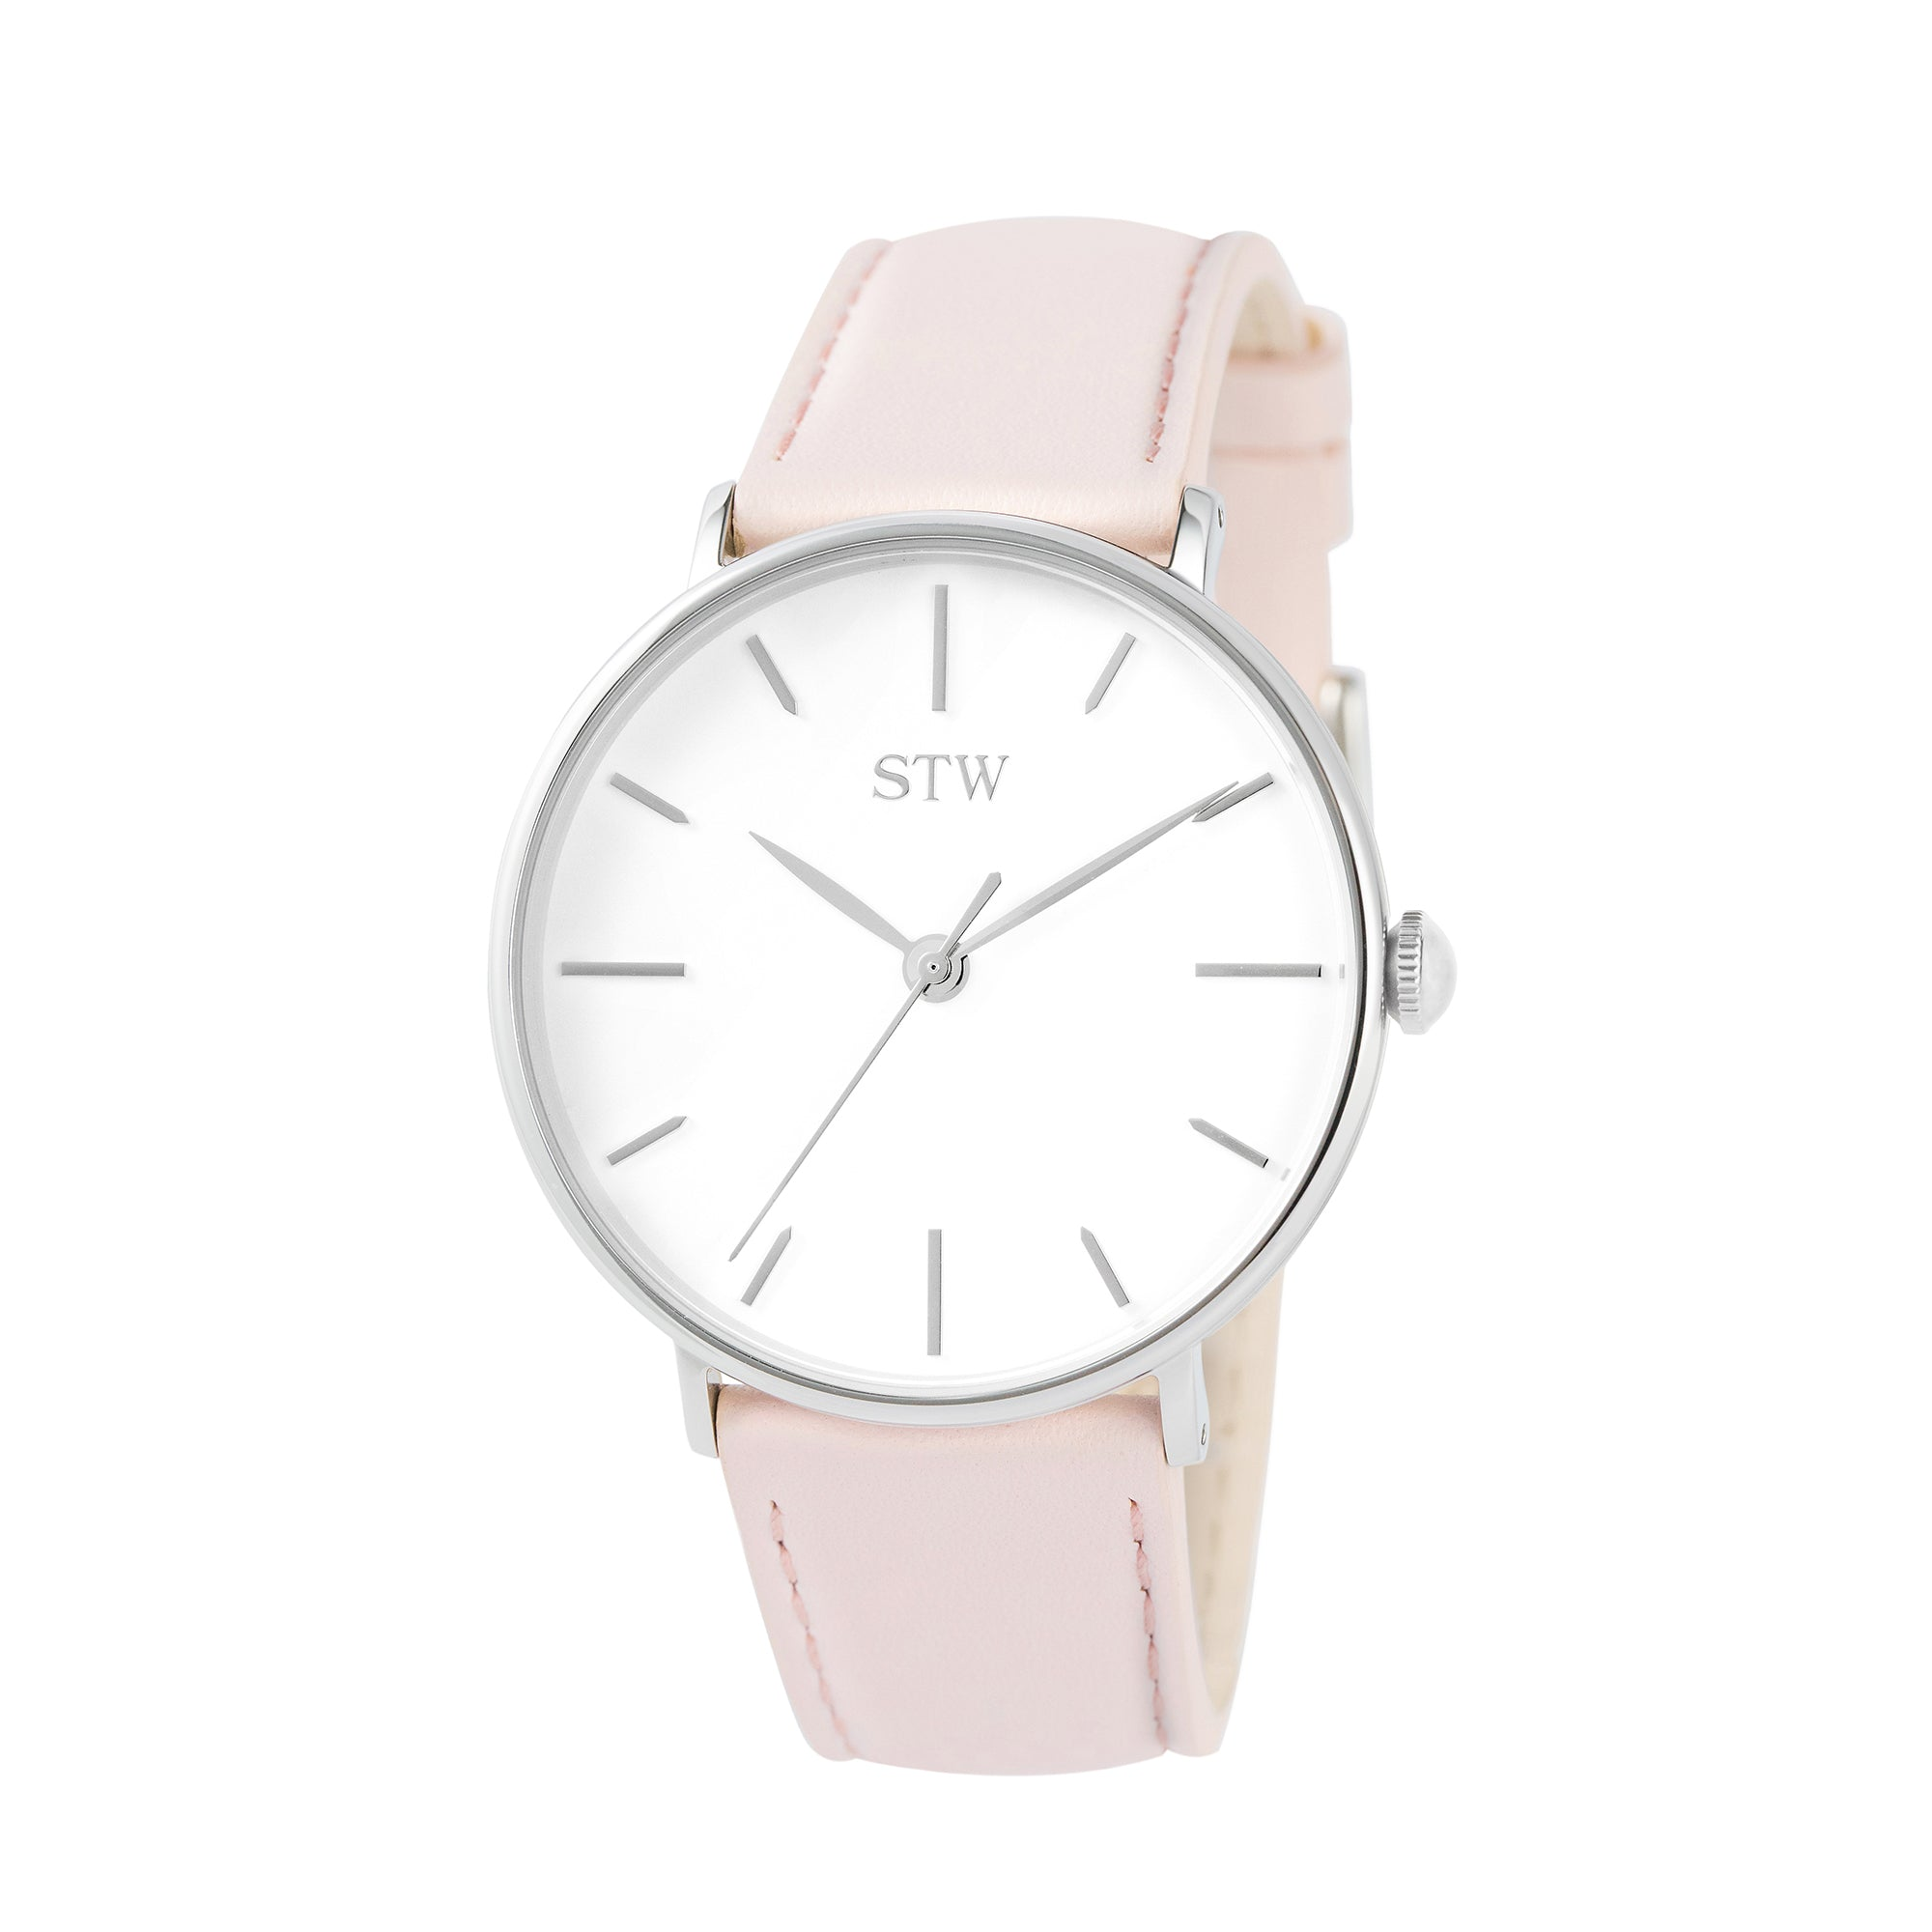 THE HERITAGE -  WHITE DIAL / BABY PINK LEATHER STRAP WATCH